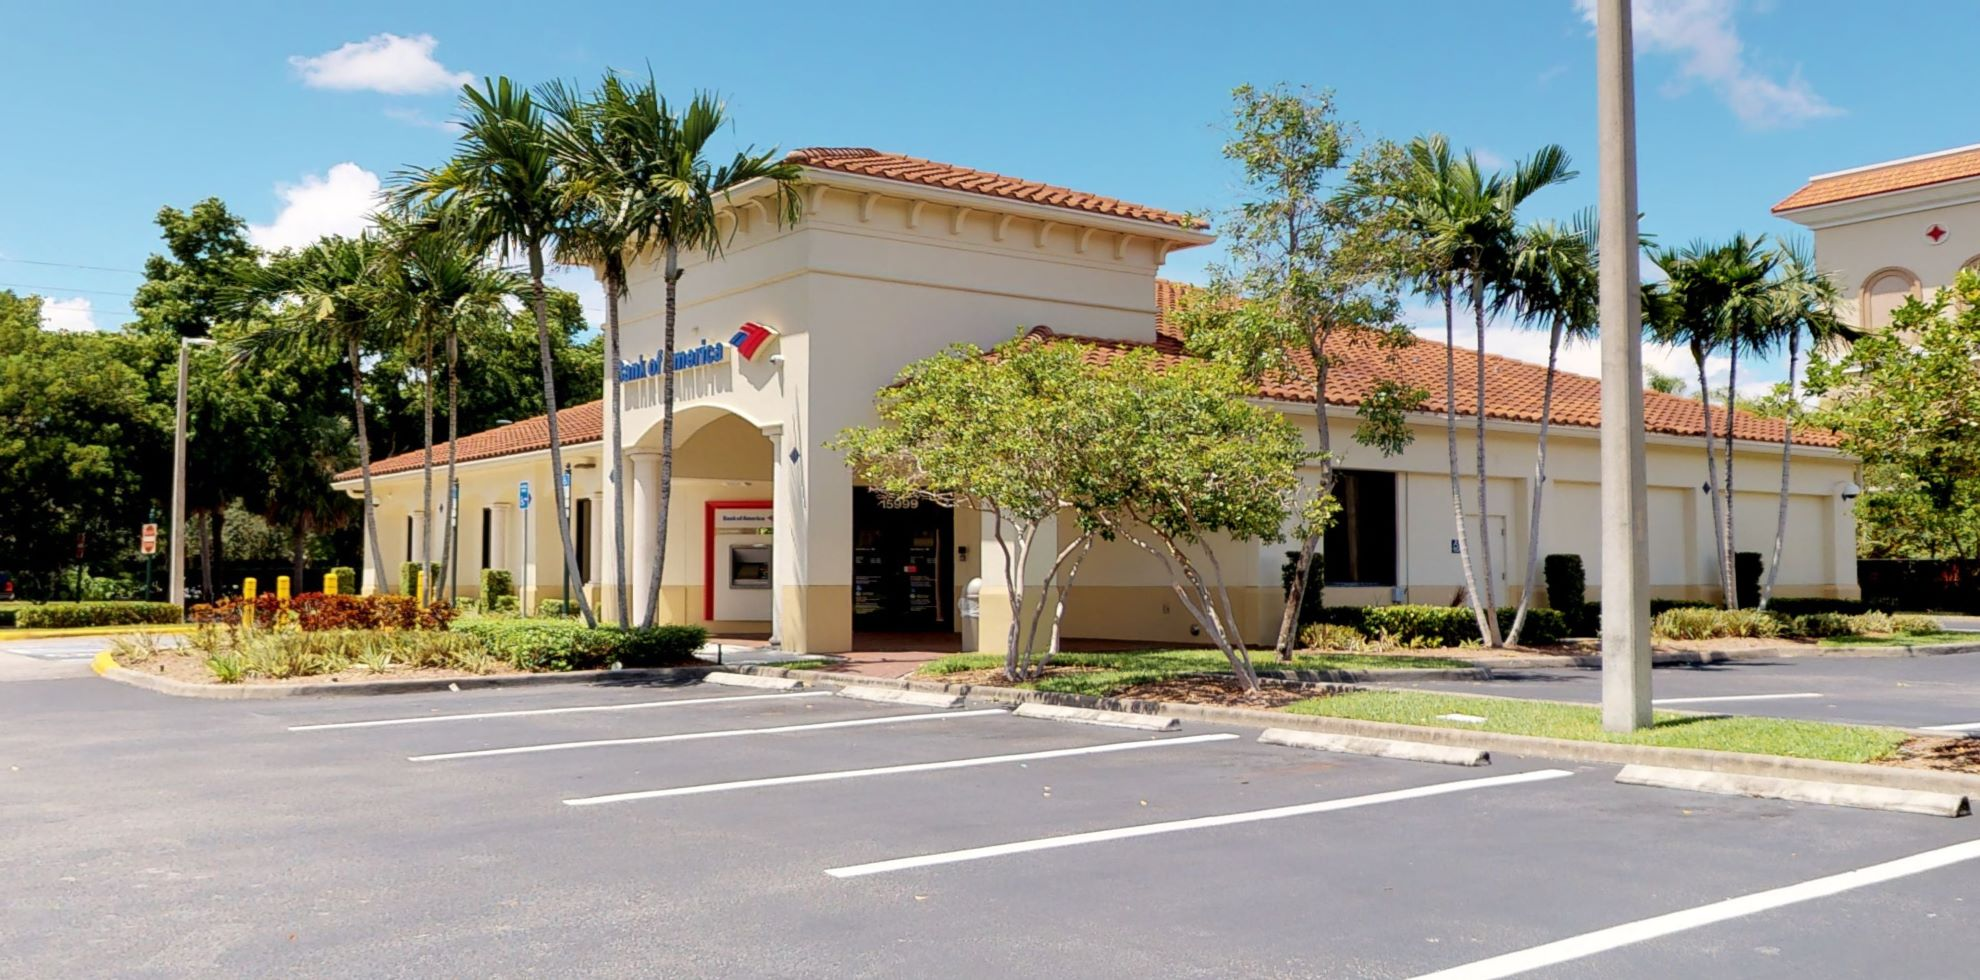 Bank of America financial center with drive-thru ATM | 15999 SW 29th St, Hollywood, FL 33027